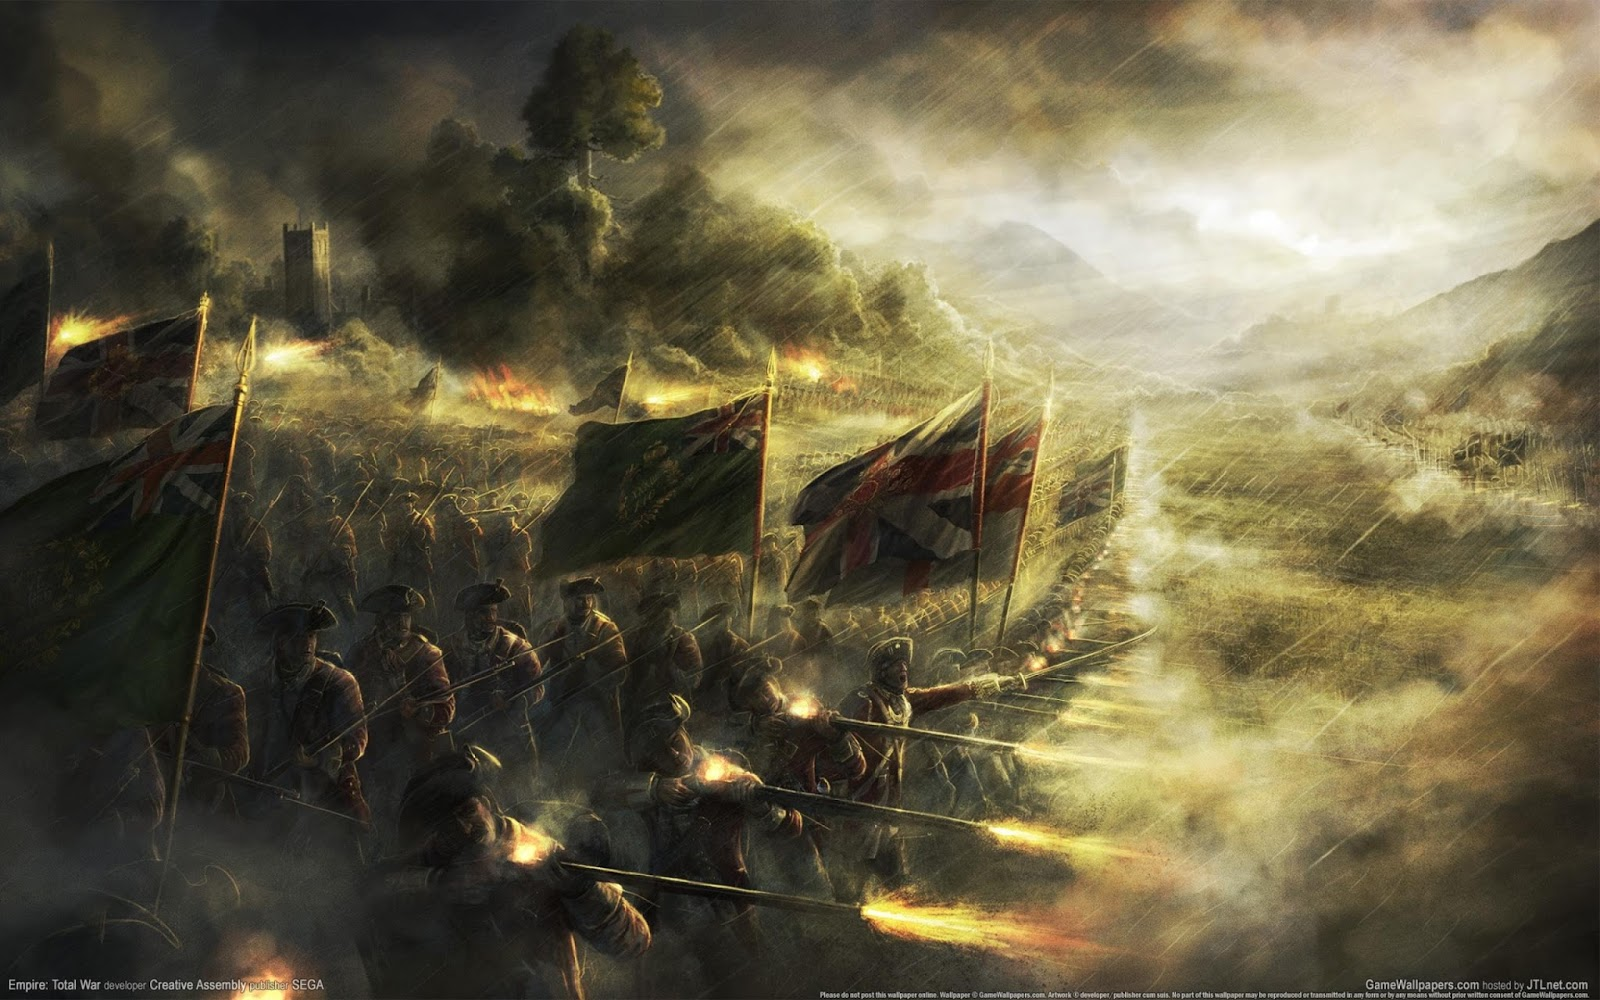 Wallpapers HD: Wallpapers Age of Empires HD